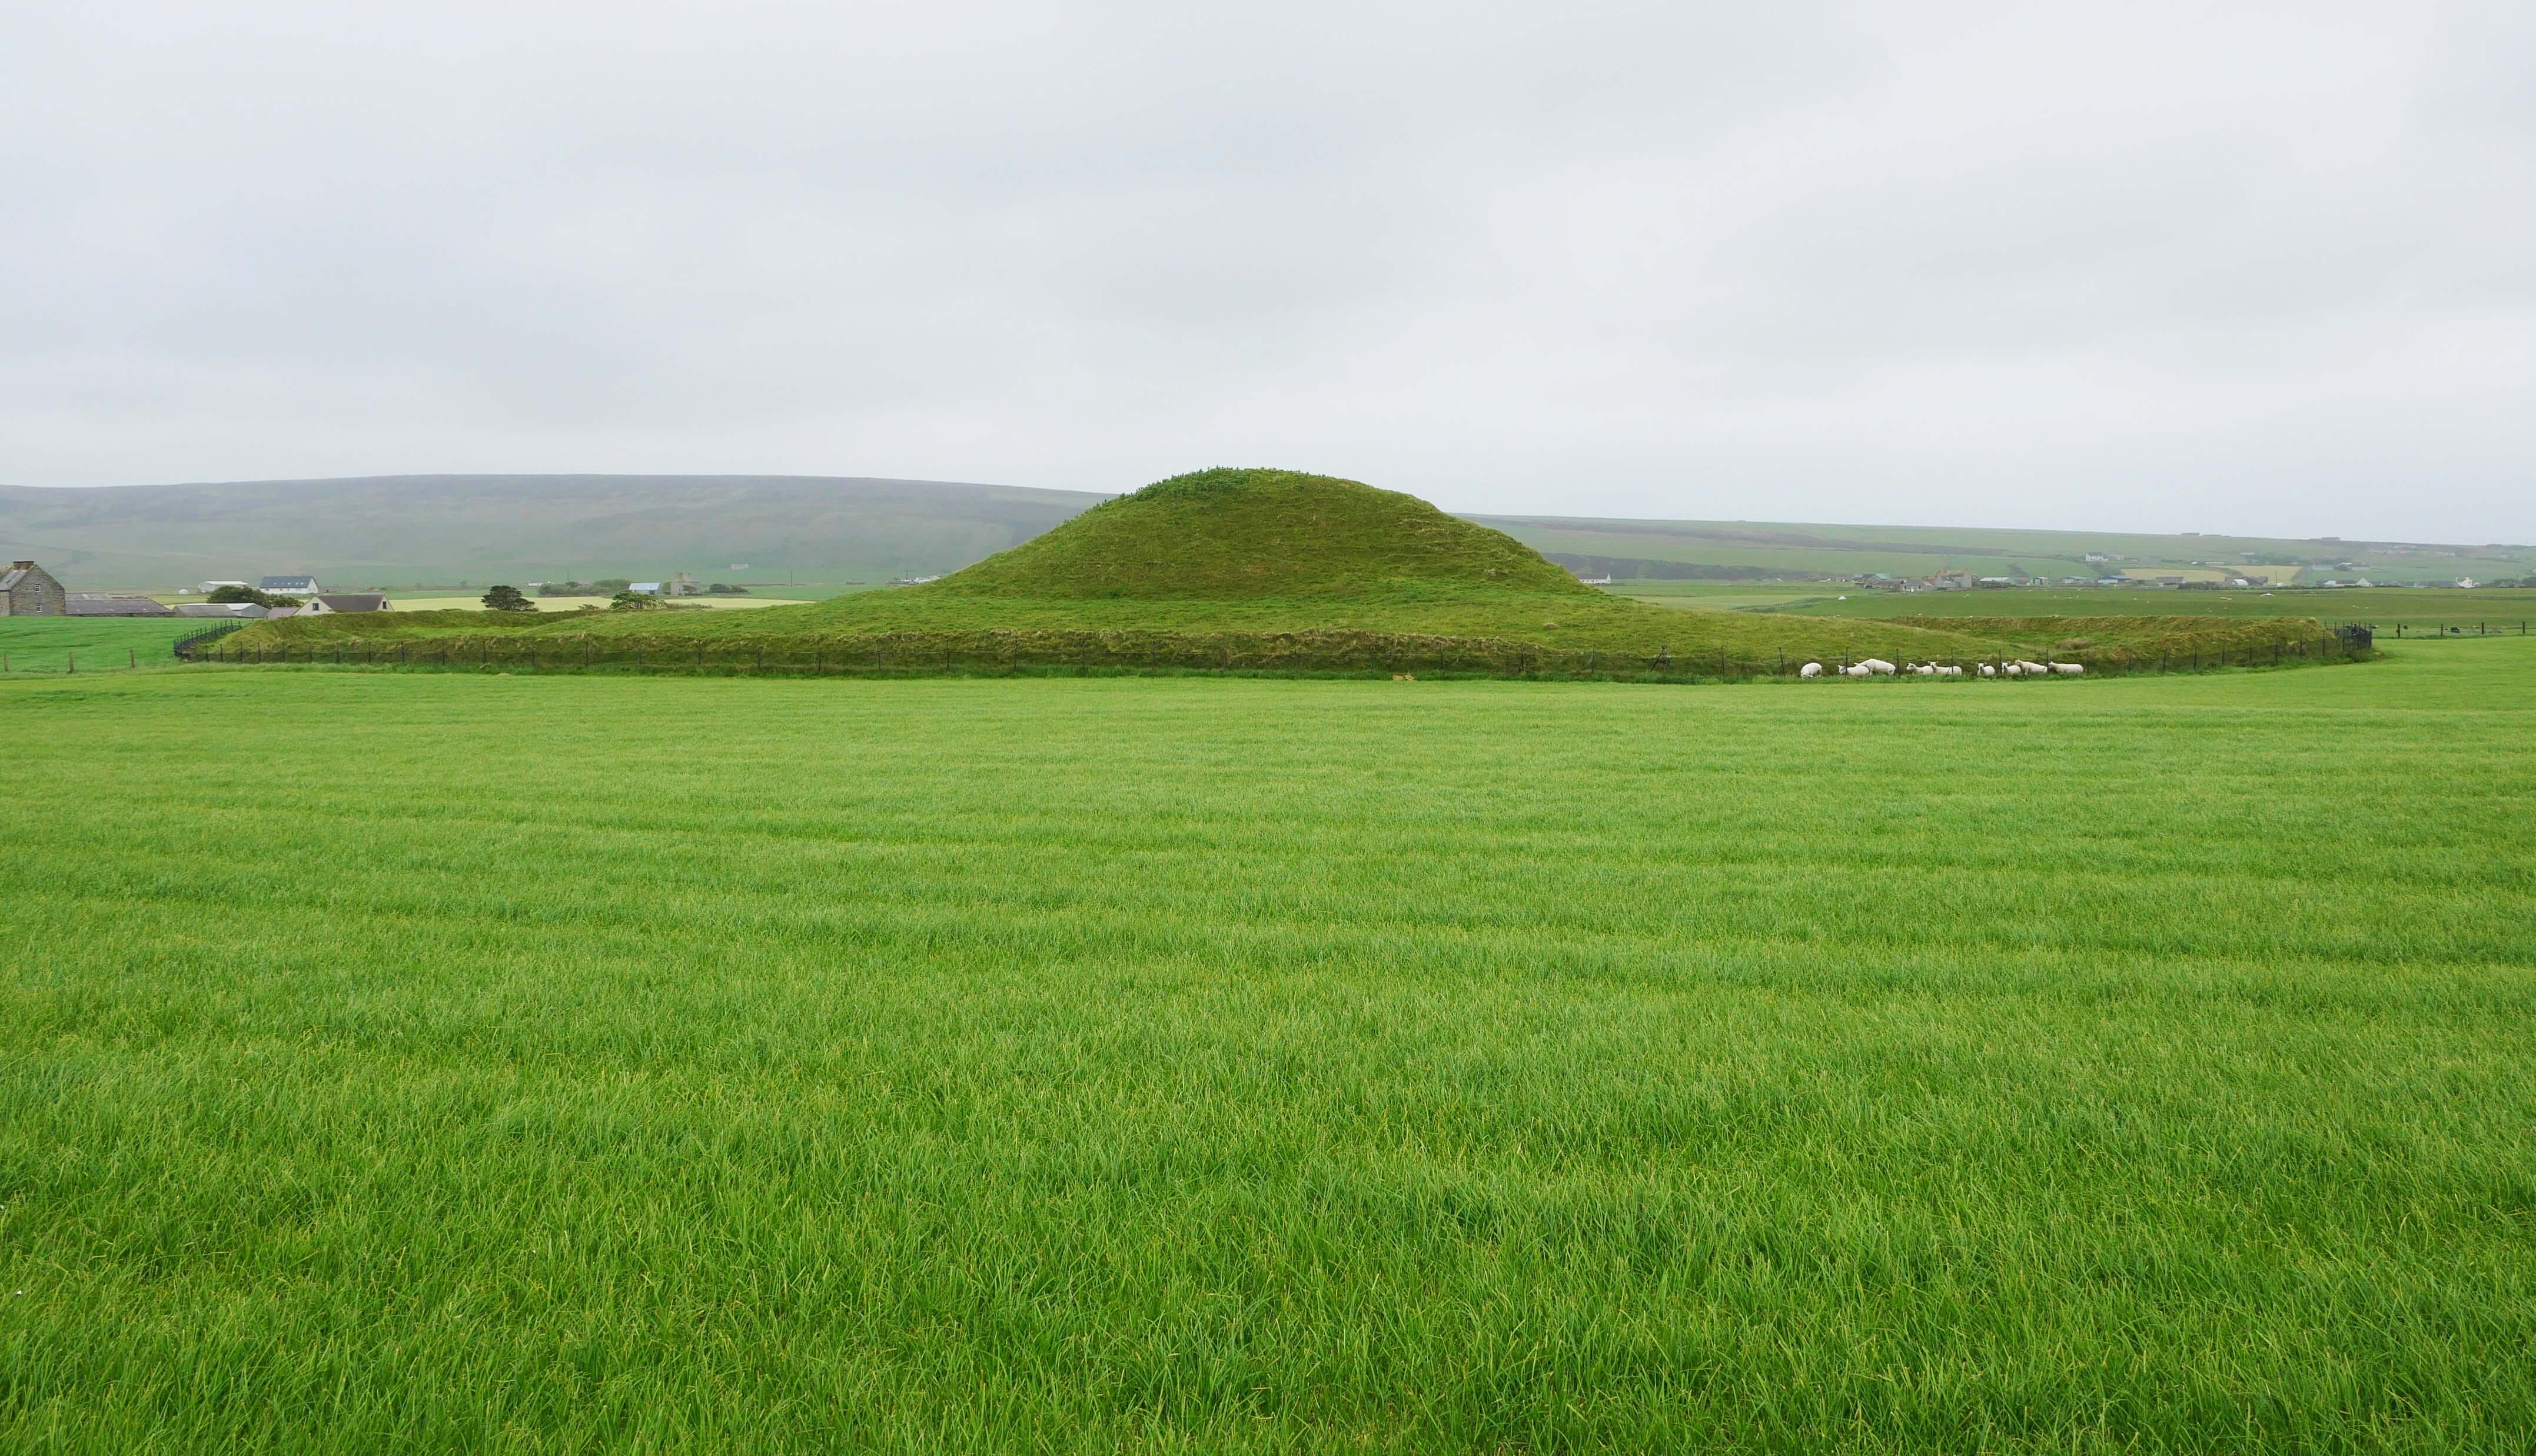 The back view of Maeshowe, Orkney Islands, Scotland - Orkneyology.com